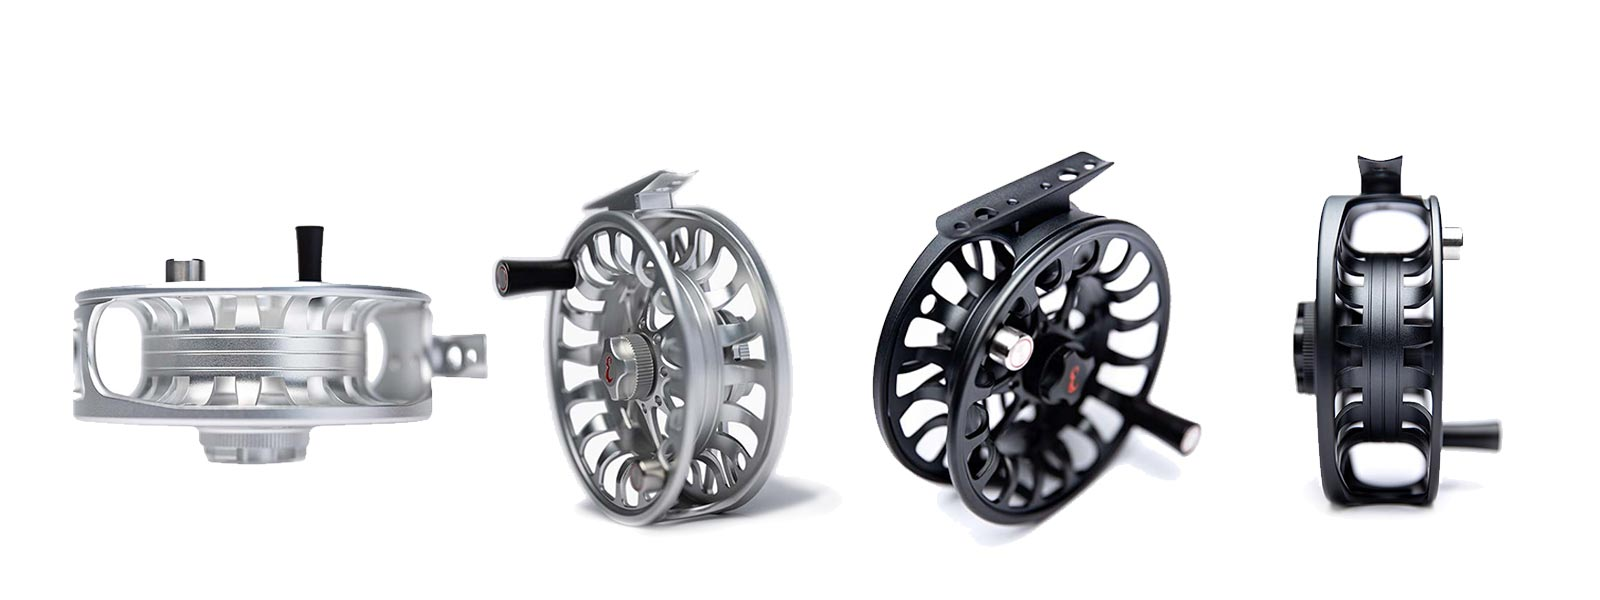 Best sealed drag fly reel